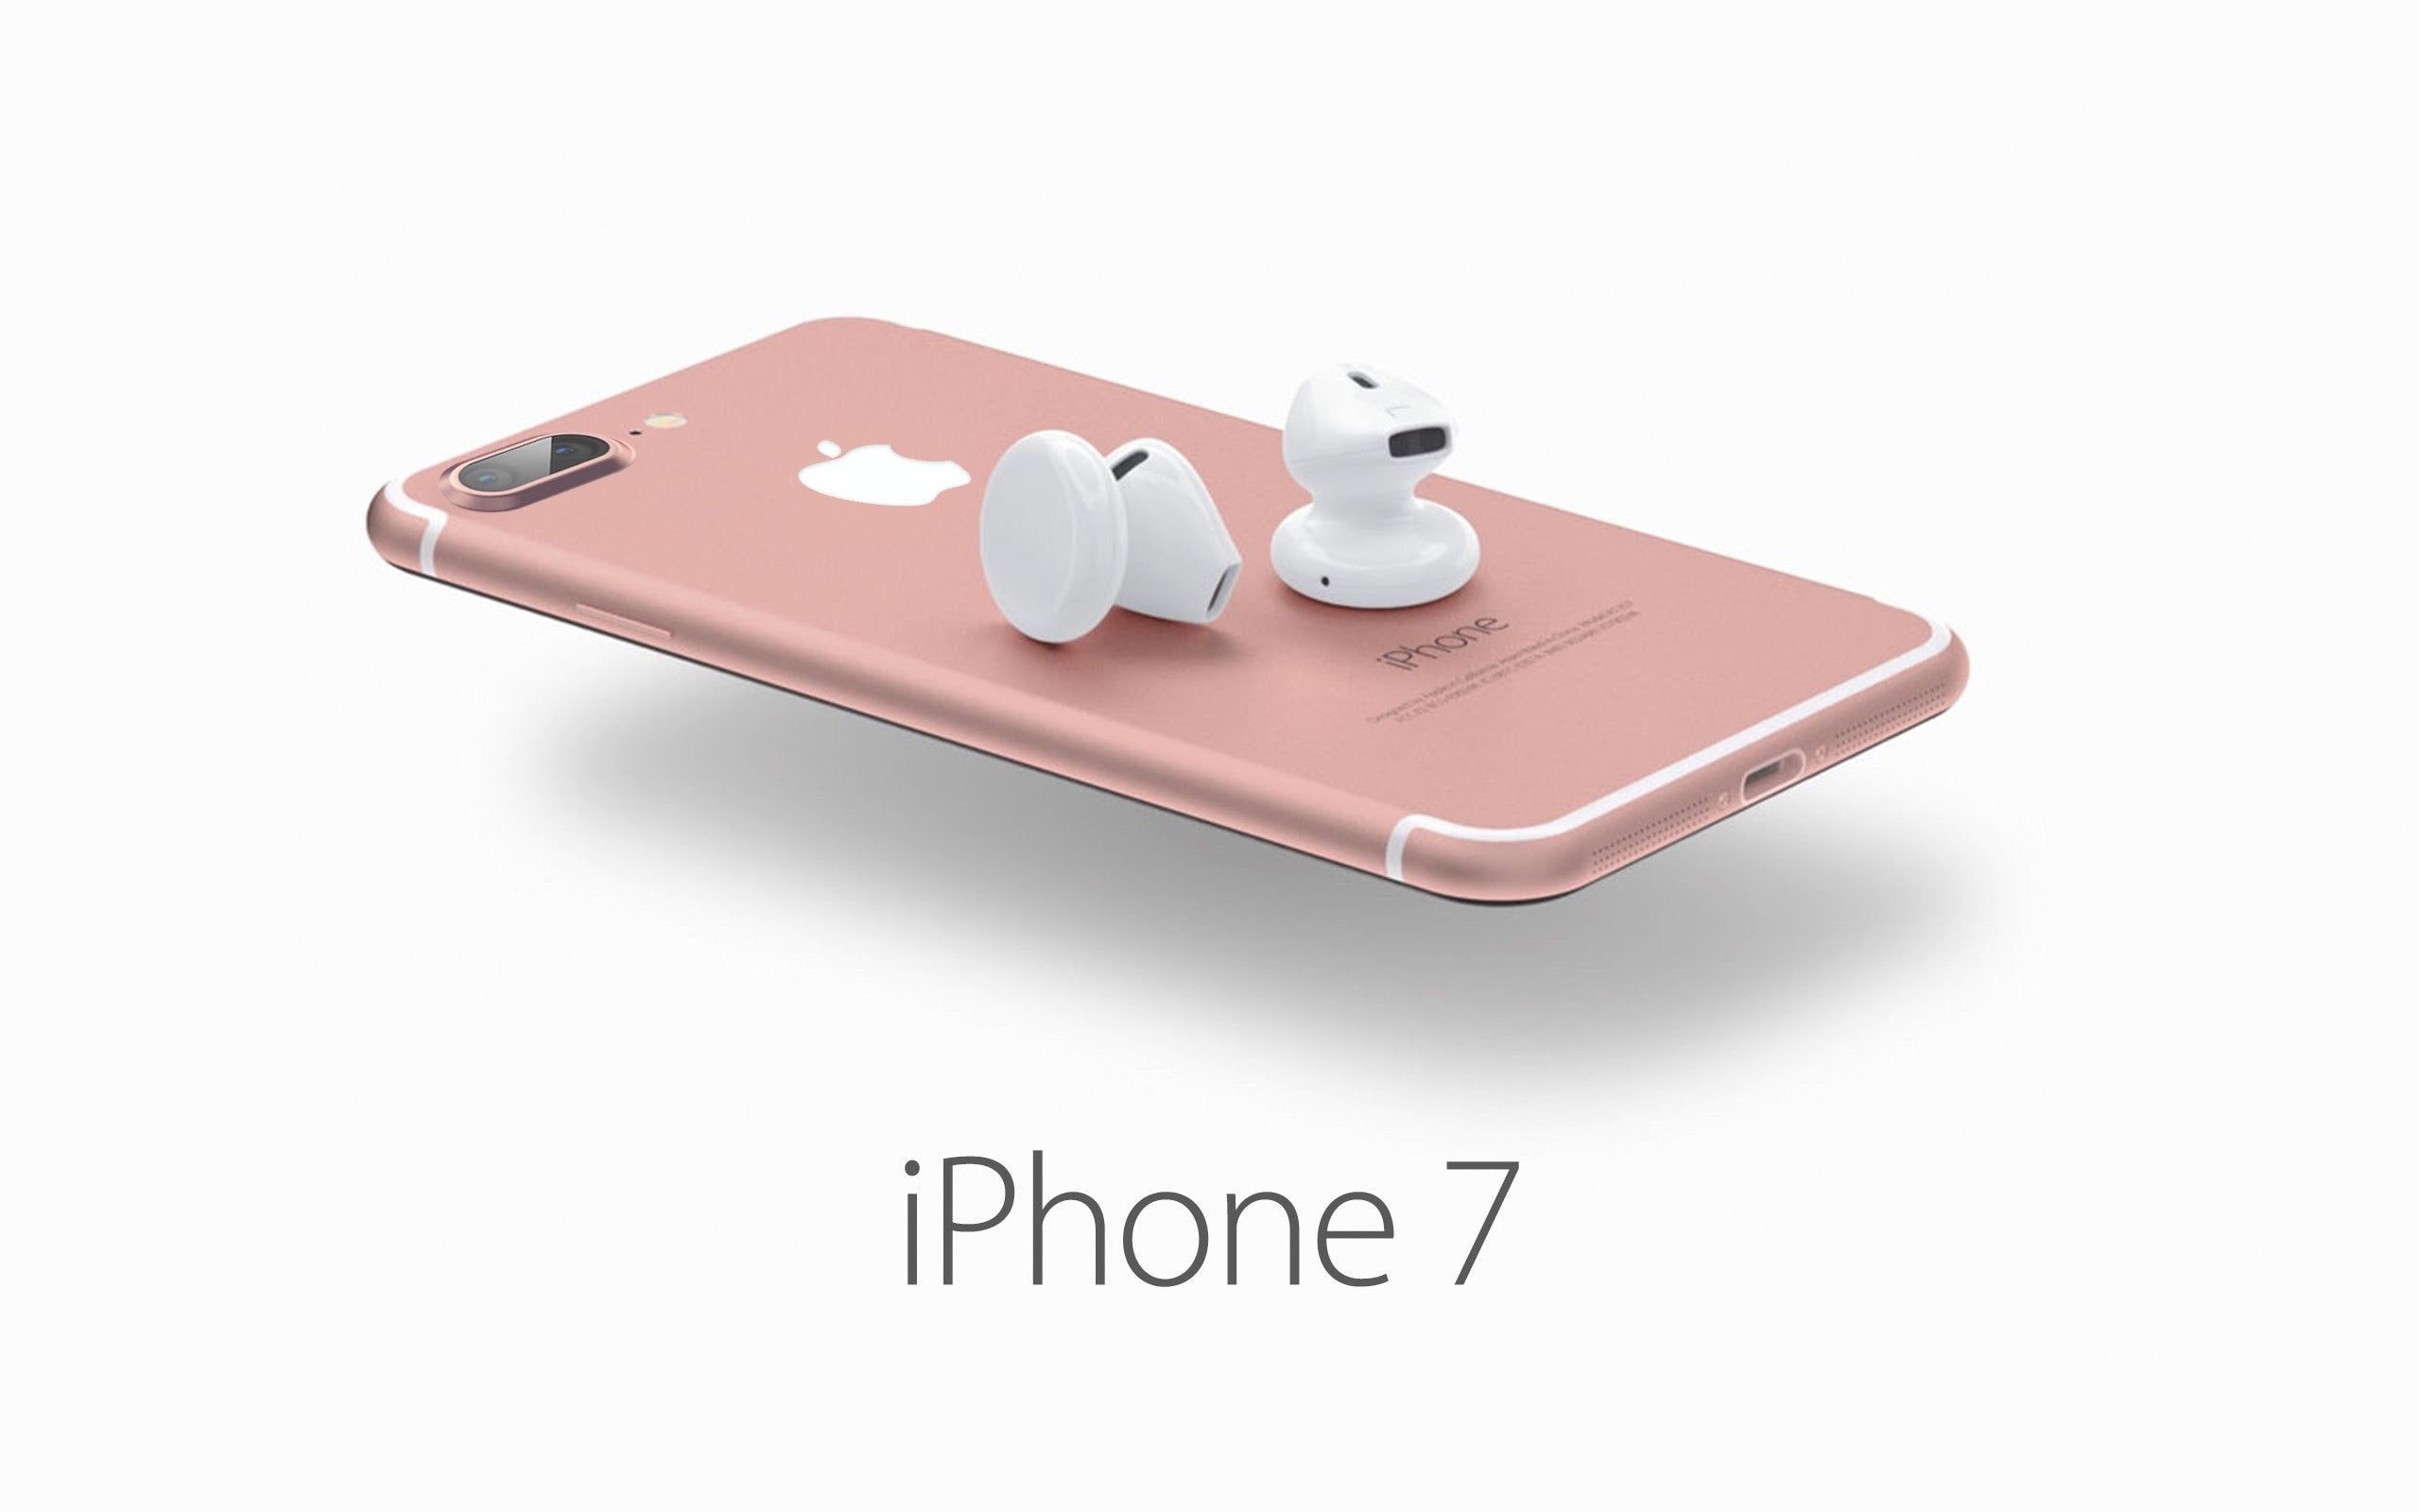 The new iPhone 7 pink, iphone 7 blue screen